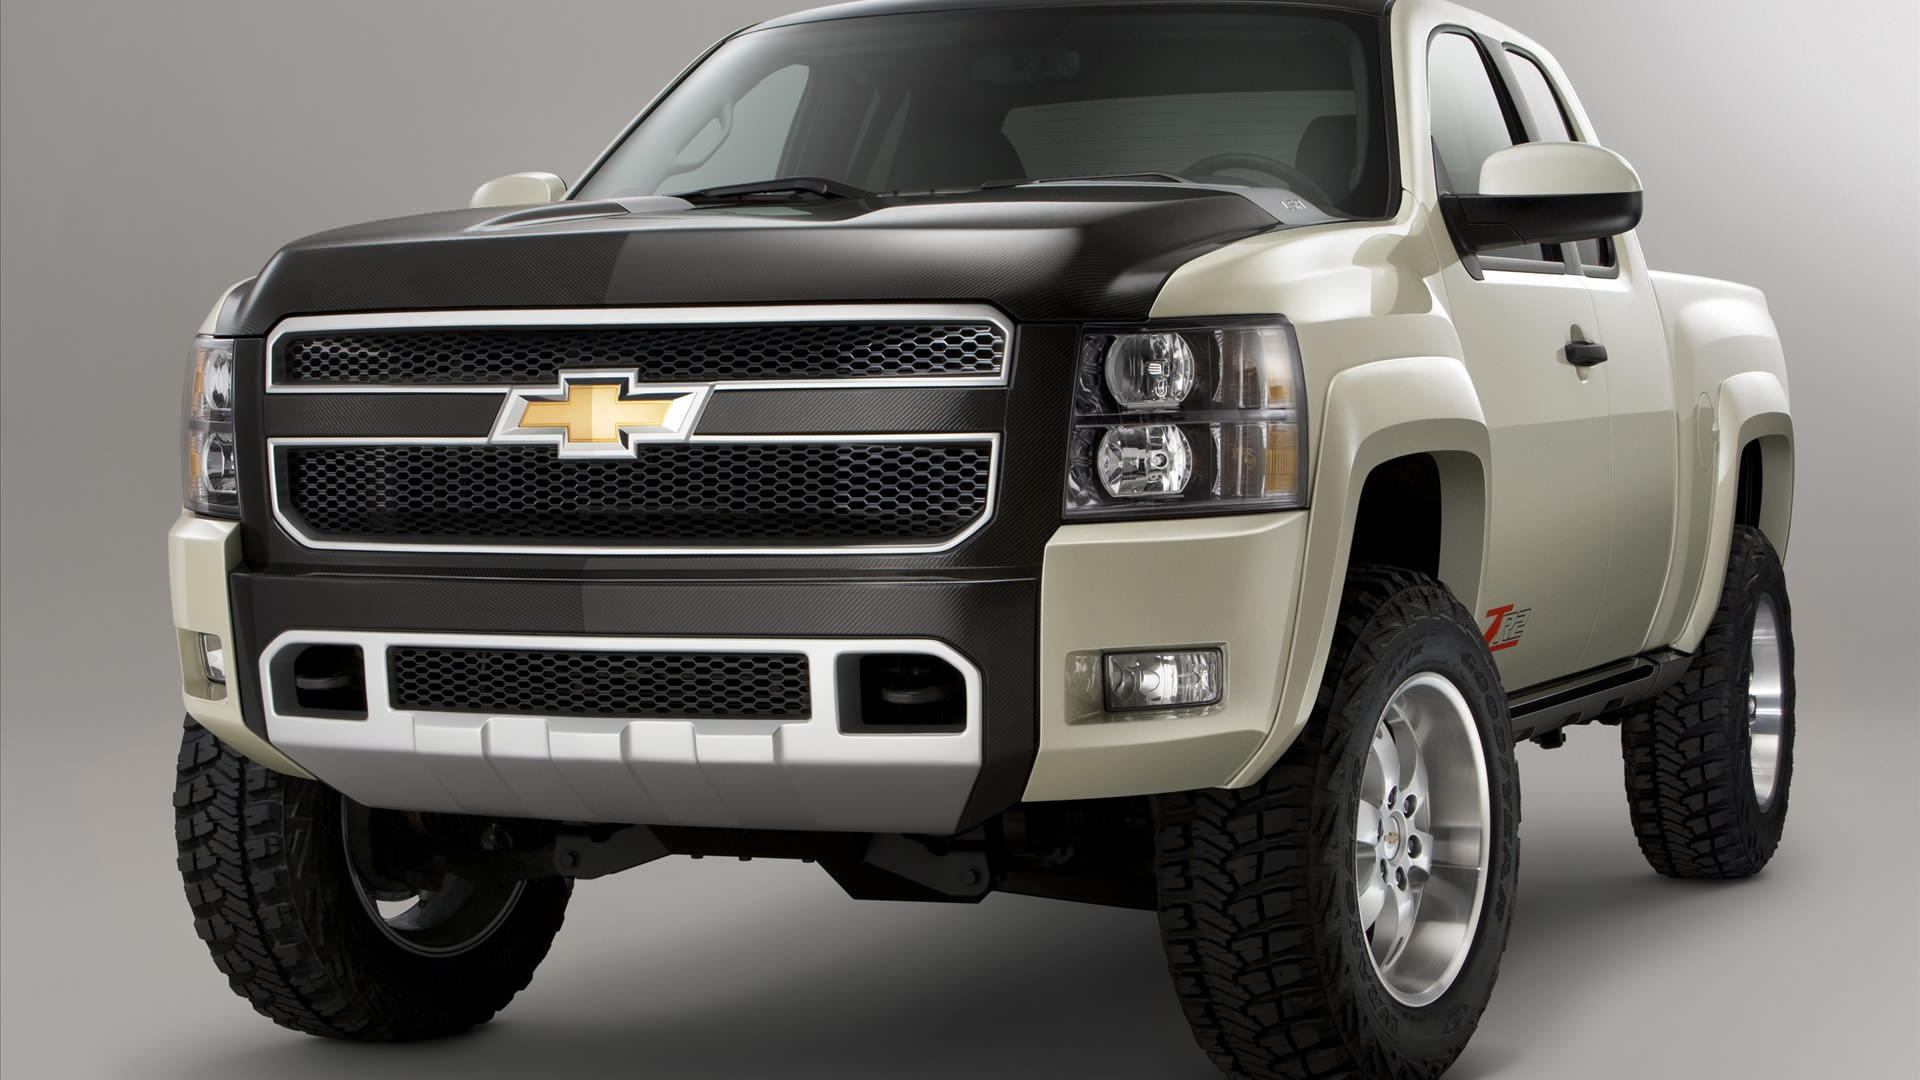 wallpapers chevrolet wallpaper truck chevy car 1920x1080 1920x1080